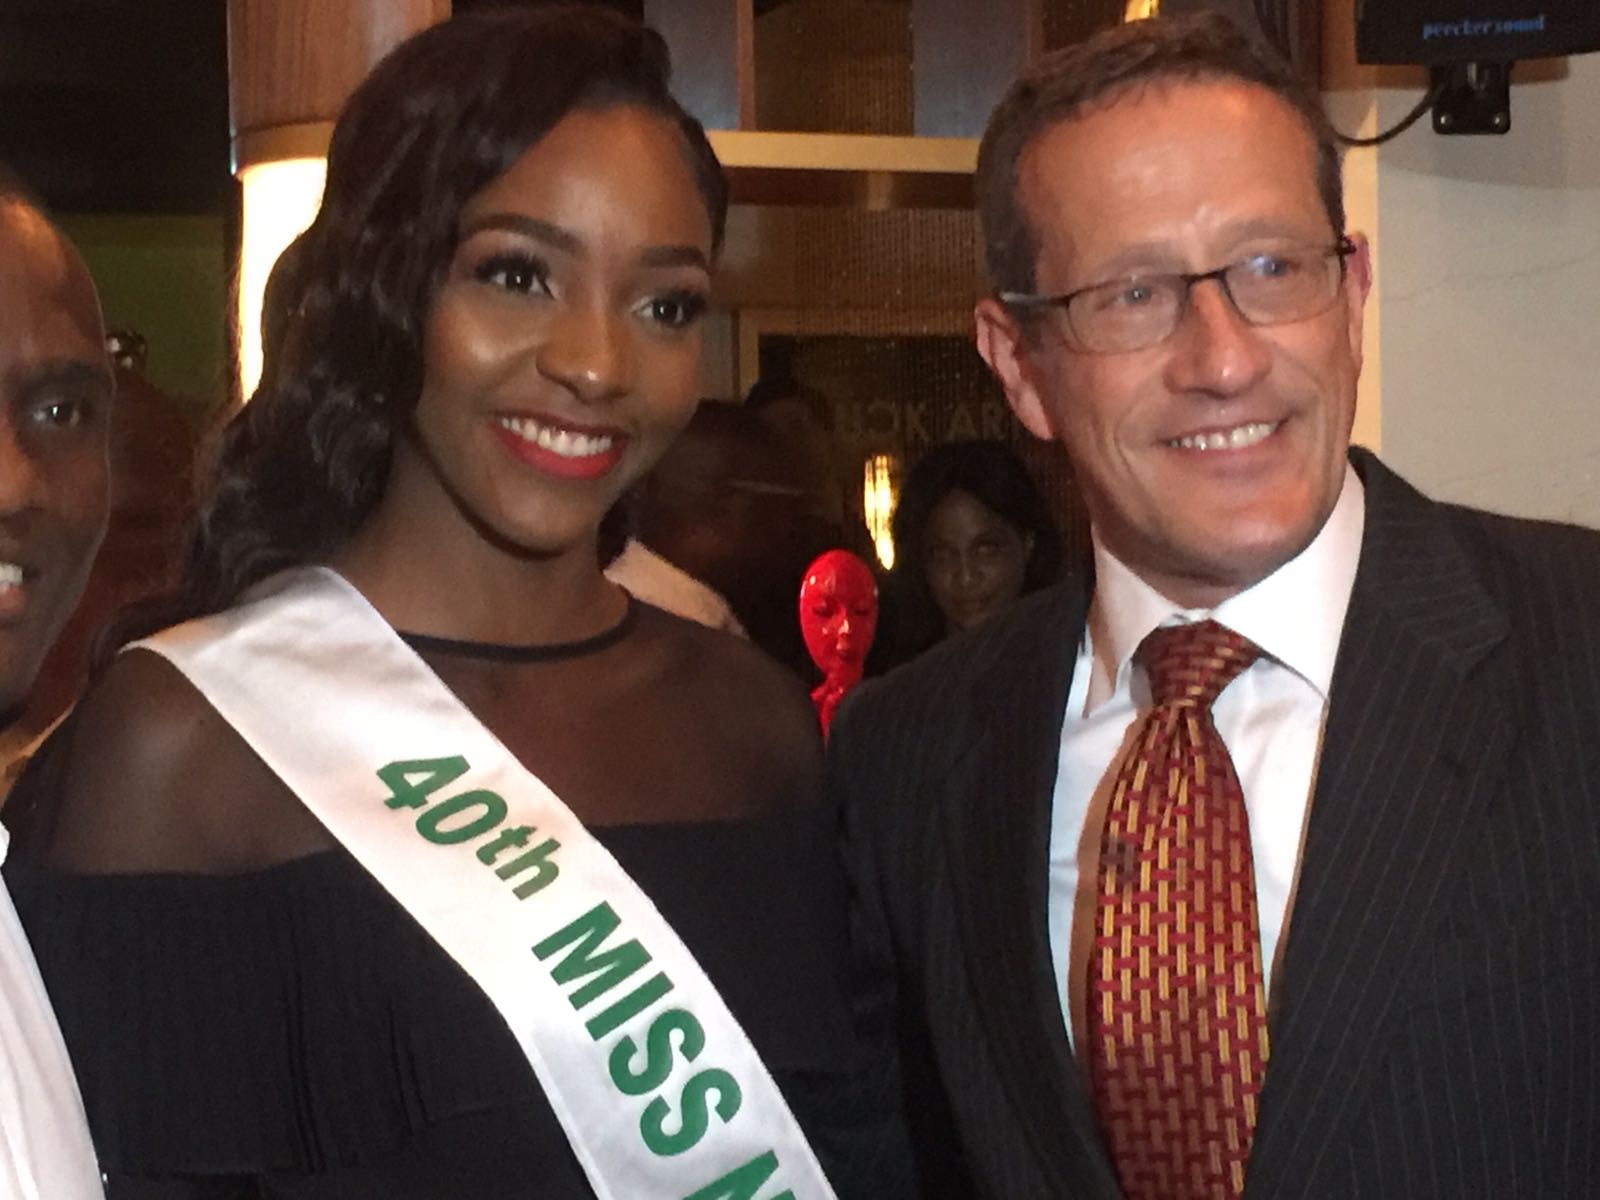 RICHARD met Miss Nigeria, Chioma Obiadi Stephanie yesterday at the launch of DT Now from Daily Times publisher Fidelis Anosike